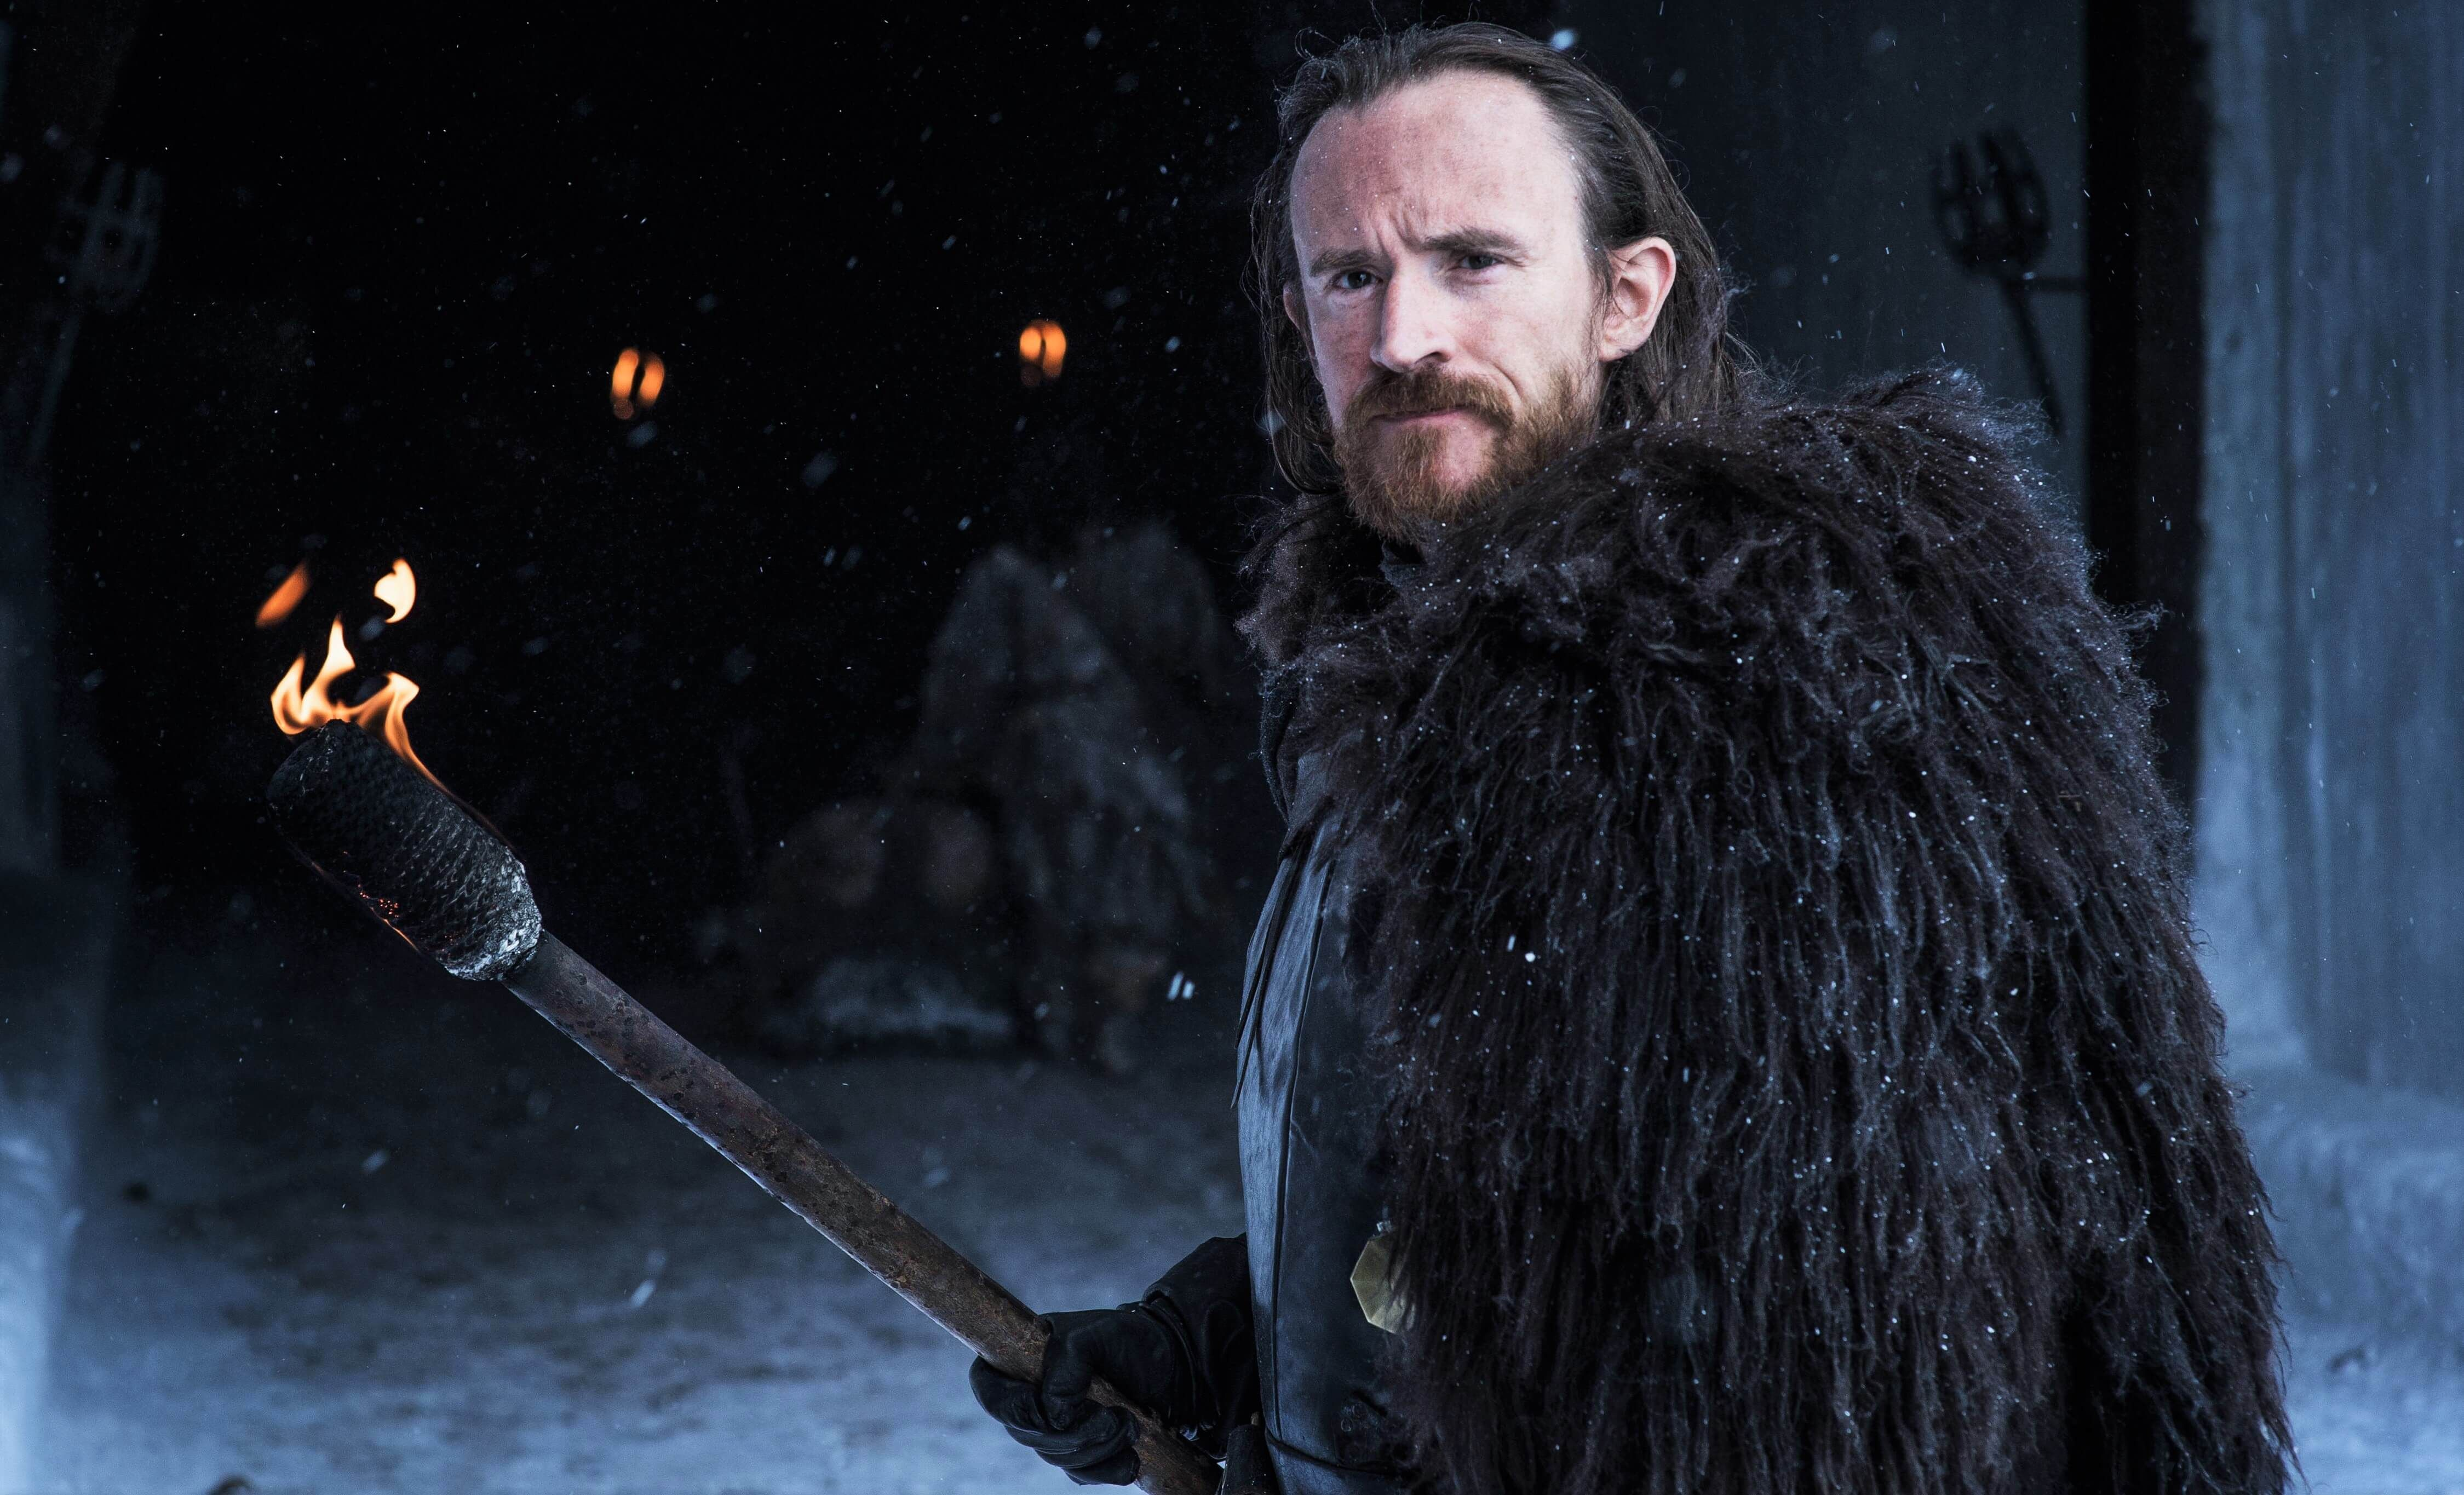 Image may contain: who died in Game of Thrones, Game of Thrones, GoT, Battle of Winterfell, The Long Night, who died, killed, characters, death, The Long Night, season 8 episode 3, Edd Tollett, Overcoat, Outdoors, Beard, Coat, Long Sleeve, Sleeve, Person, Face, Human, Apparel, Clothing